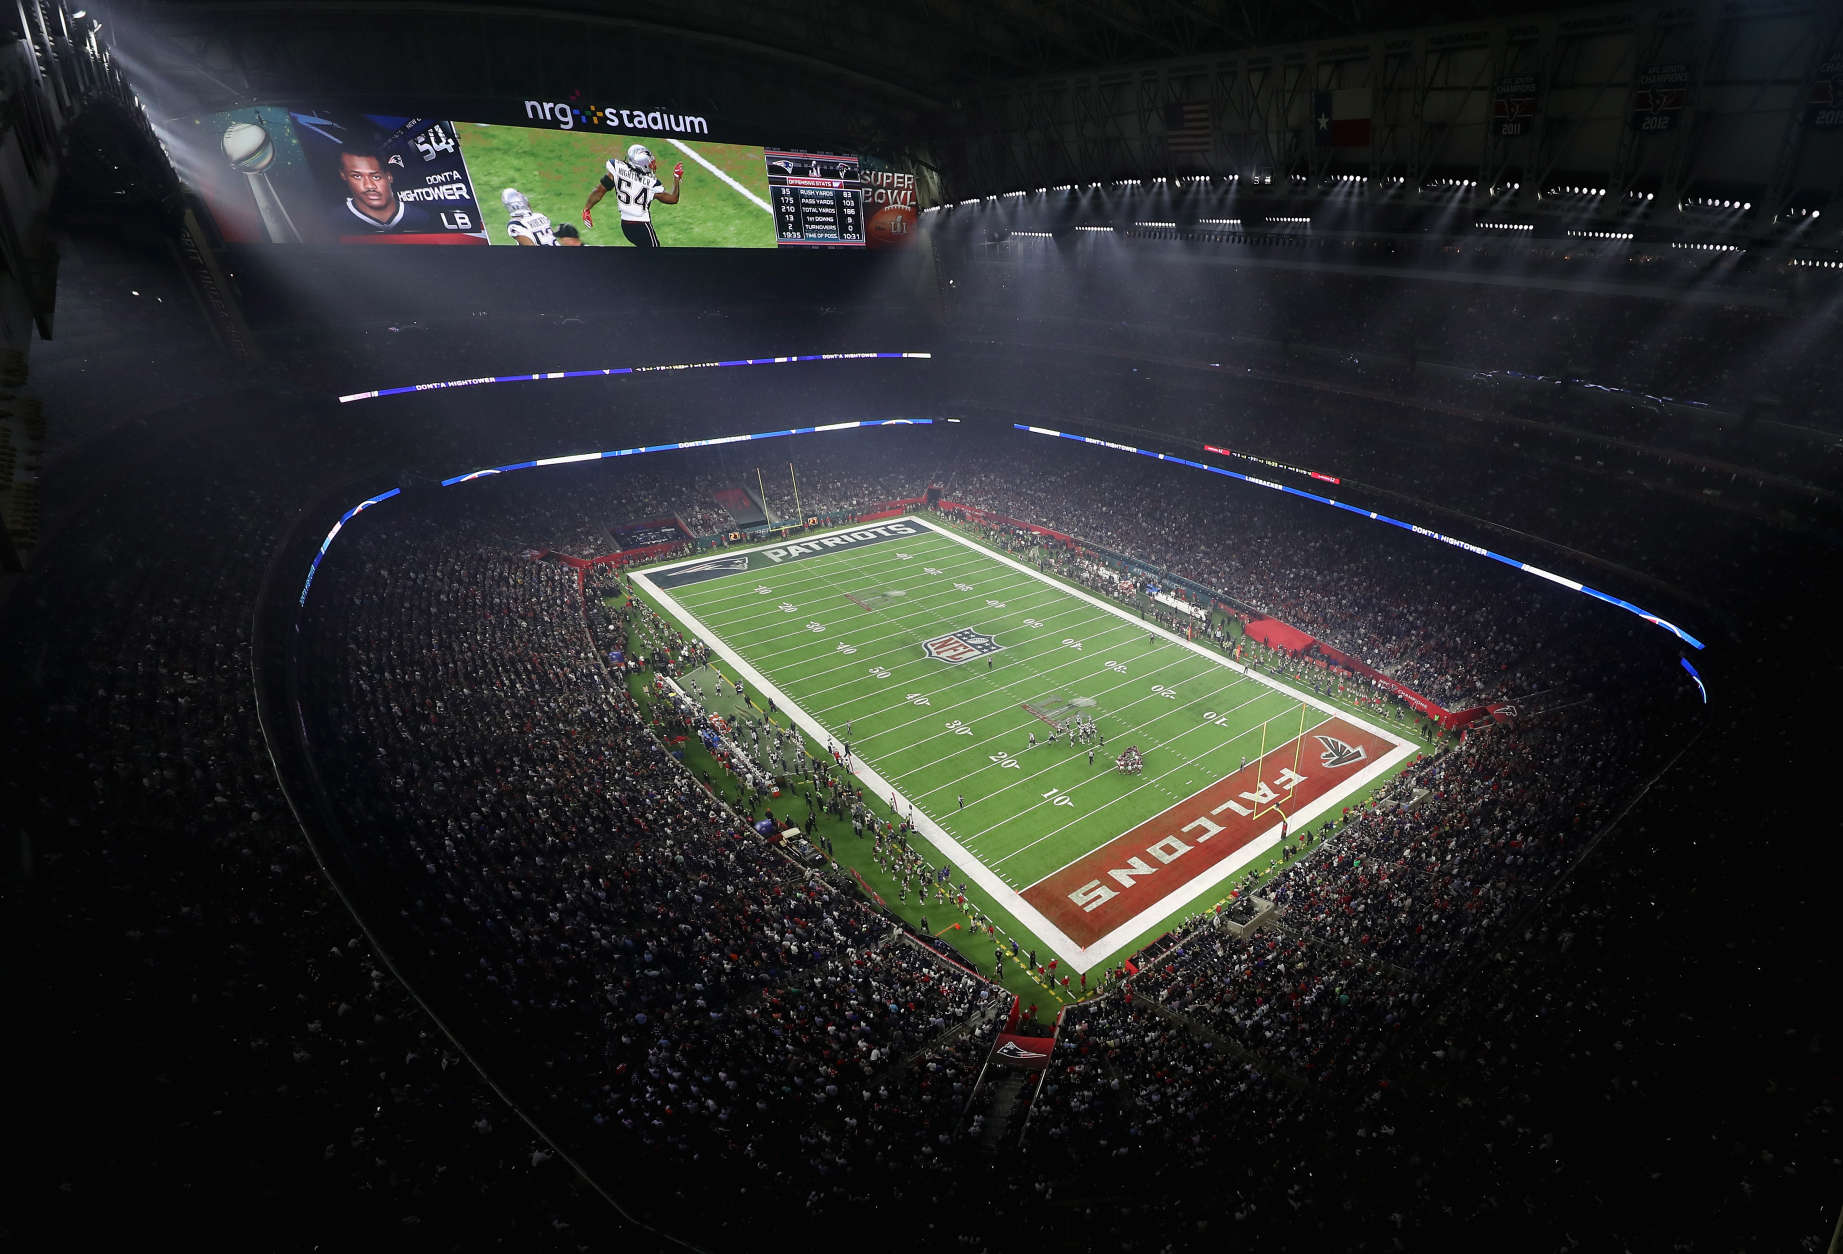 HOUSTON, TX - FEBRUARY 05:  A general view of the field at the start of the second half during Super Bowl 51 between the New England Patriots and the Atlanta Falcons at NRG Stadium on February 5, 2017 in Houston, Texas.  (Photo by Tom Pennington/Getty Images)